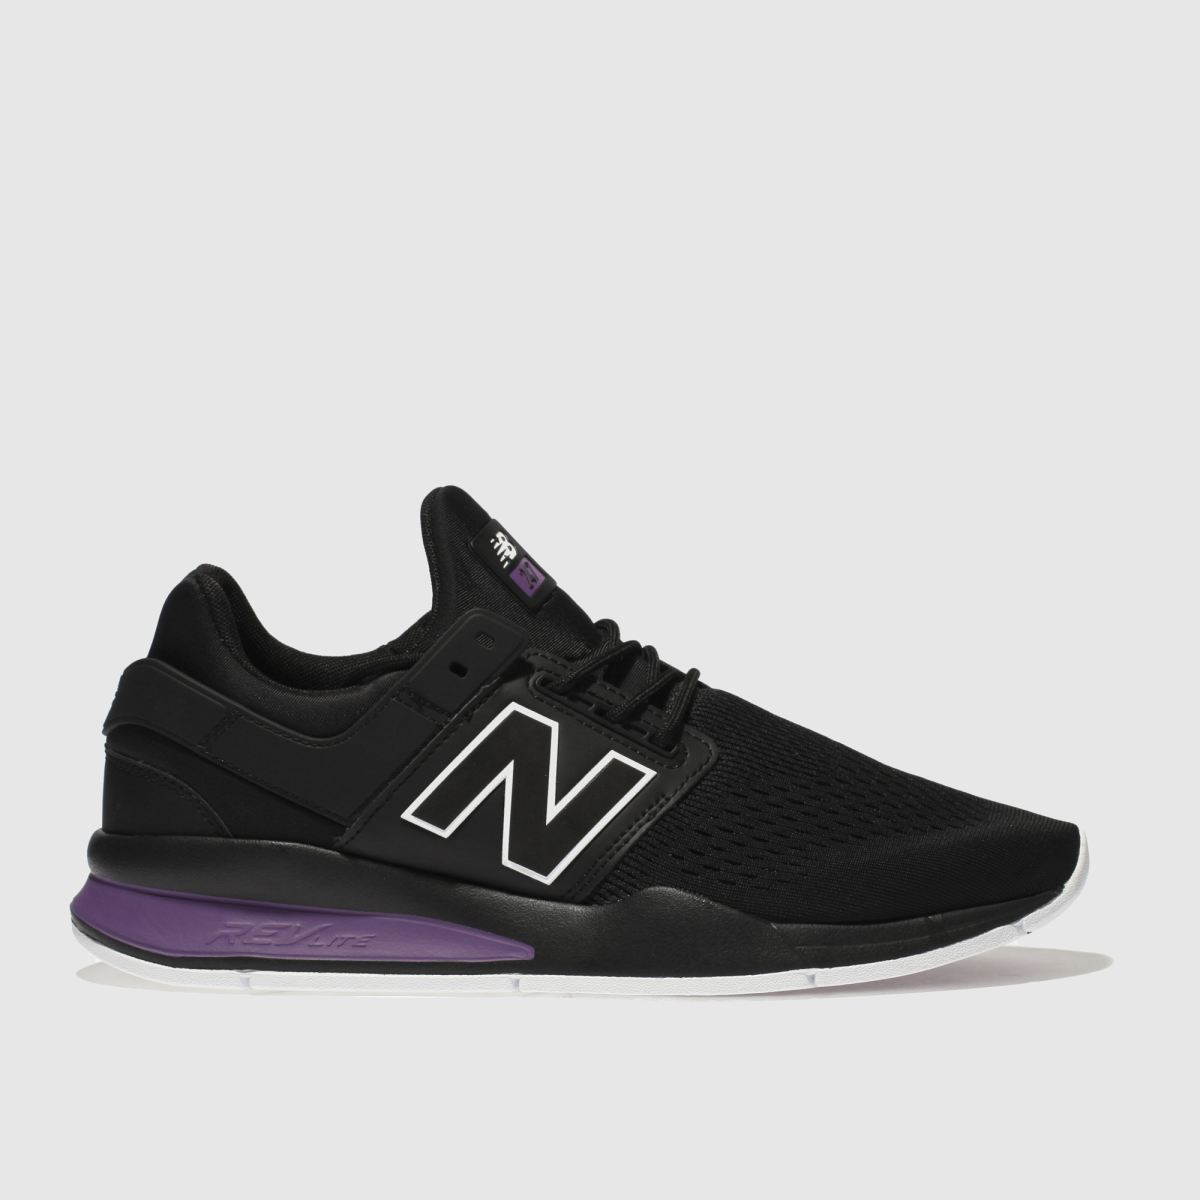 New Balance Black & Purple 247 V2 Trainers